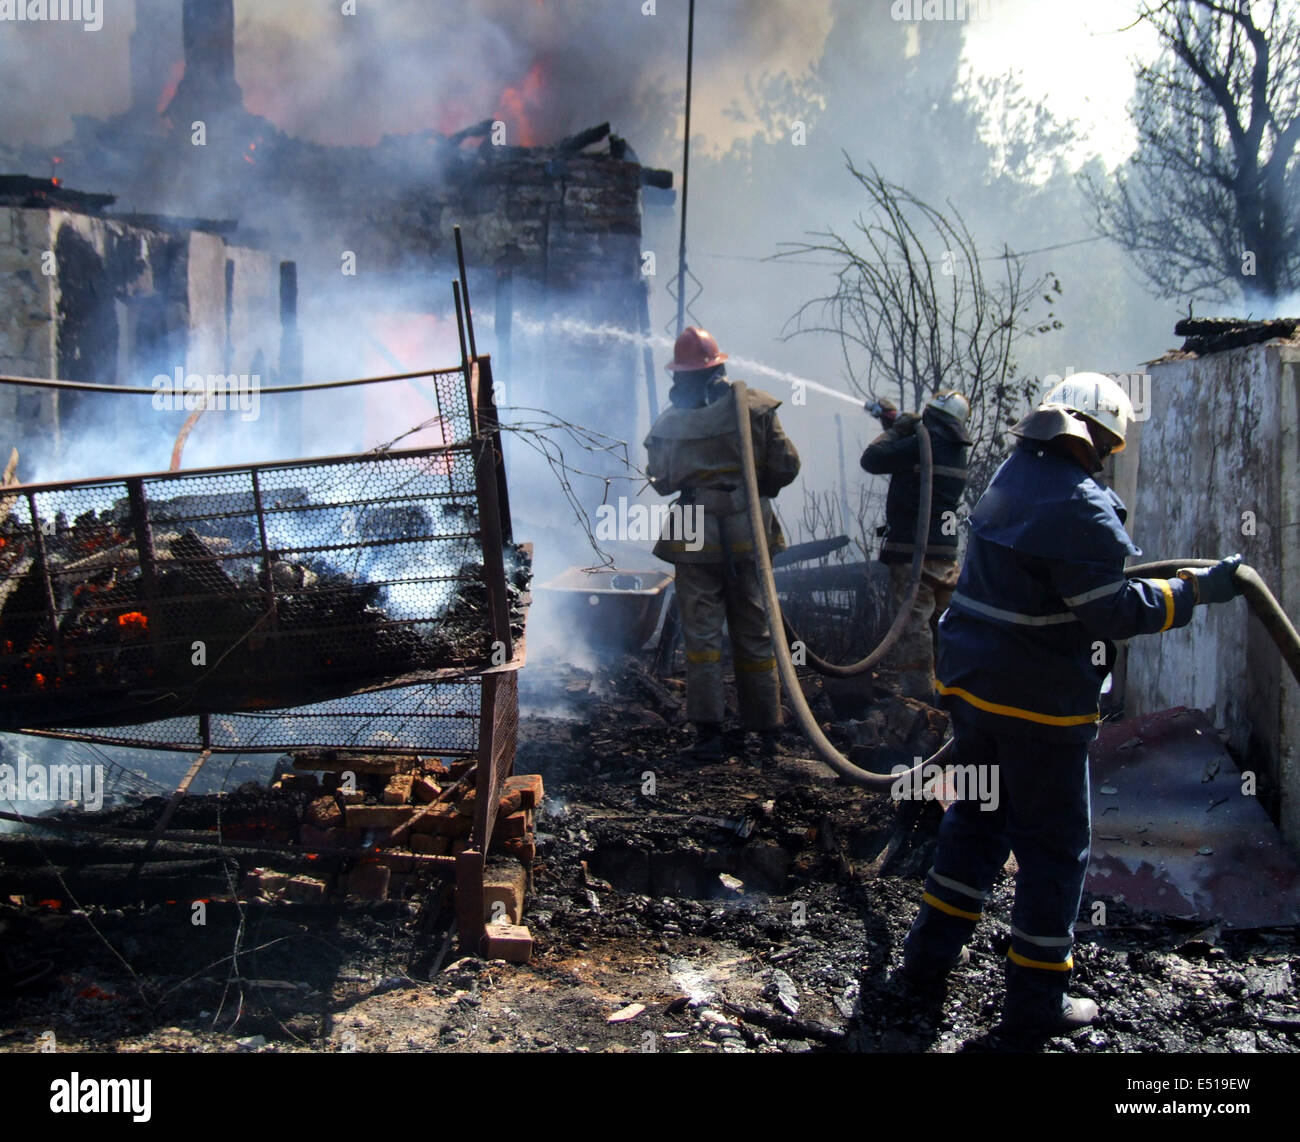 firefighters extinguish a fire - Stock Image